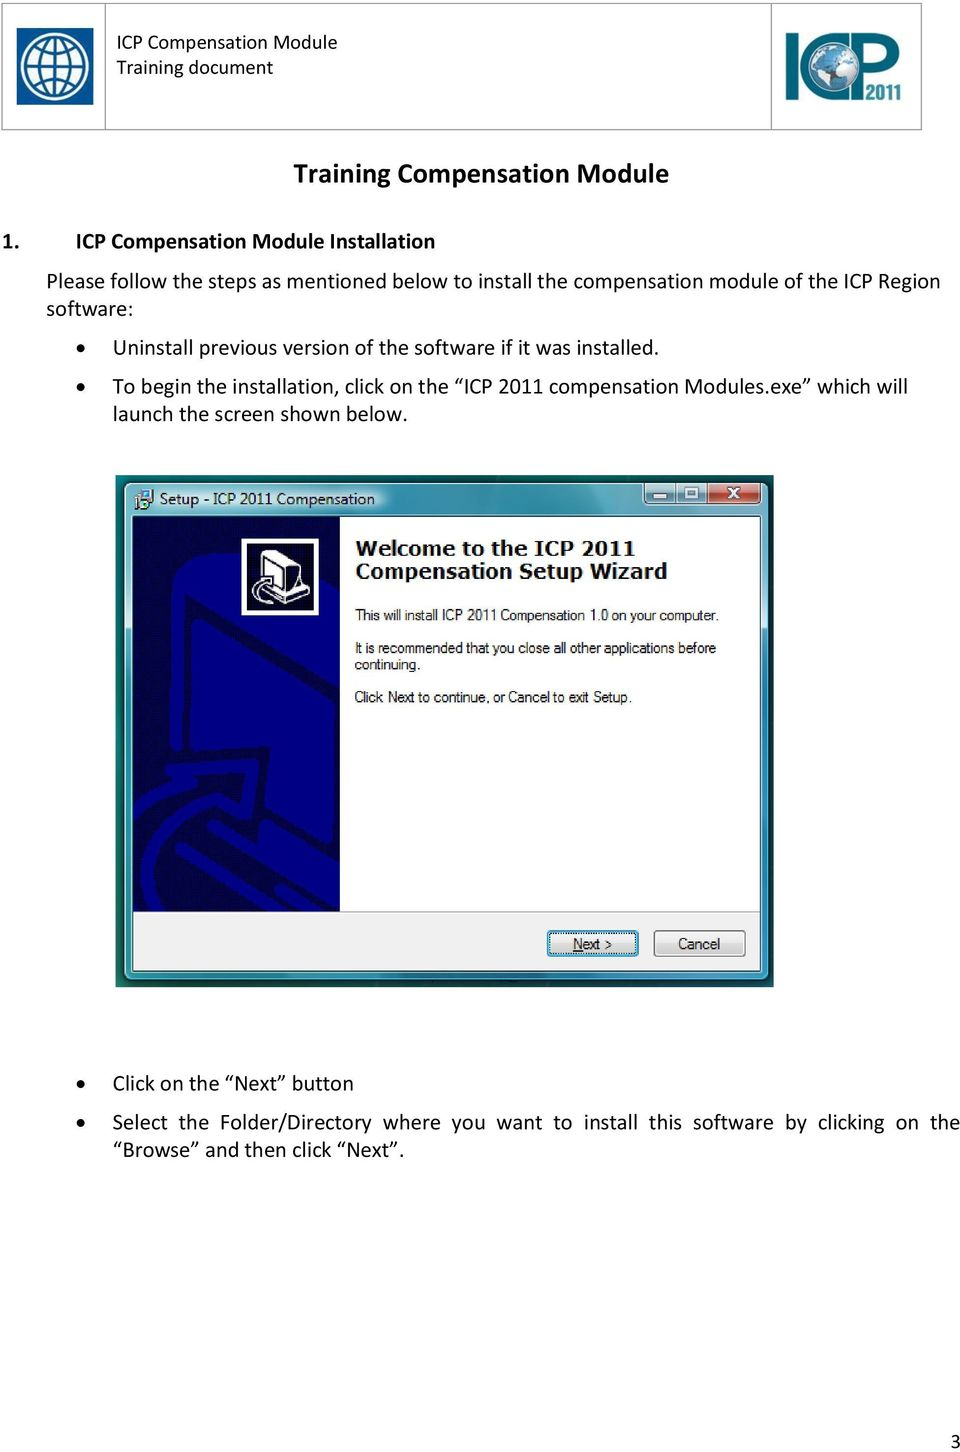 ICP Region software: Uninstall previous version of the software if it was installed.